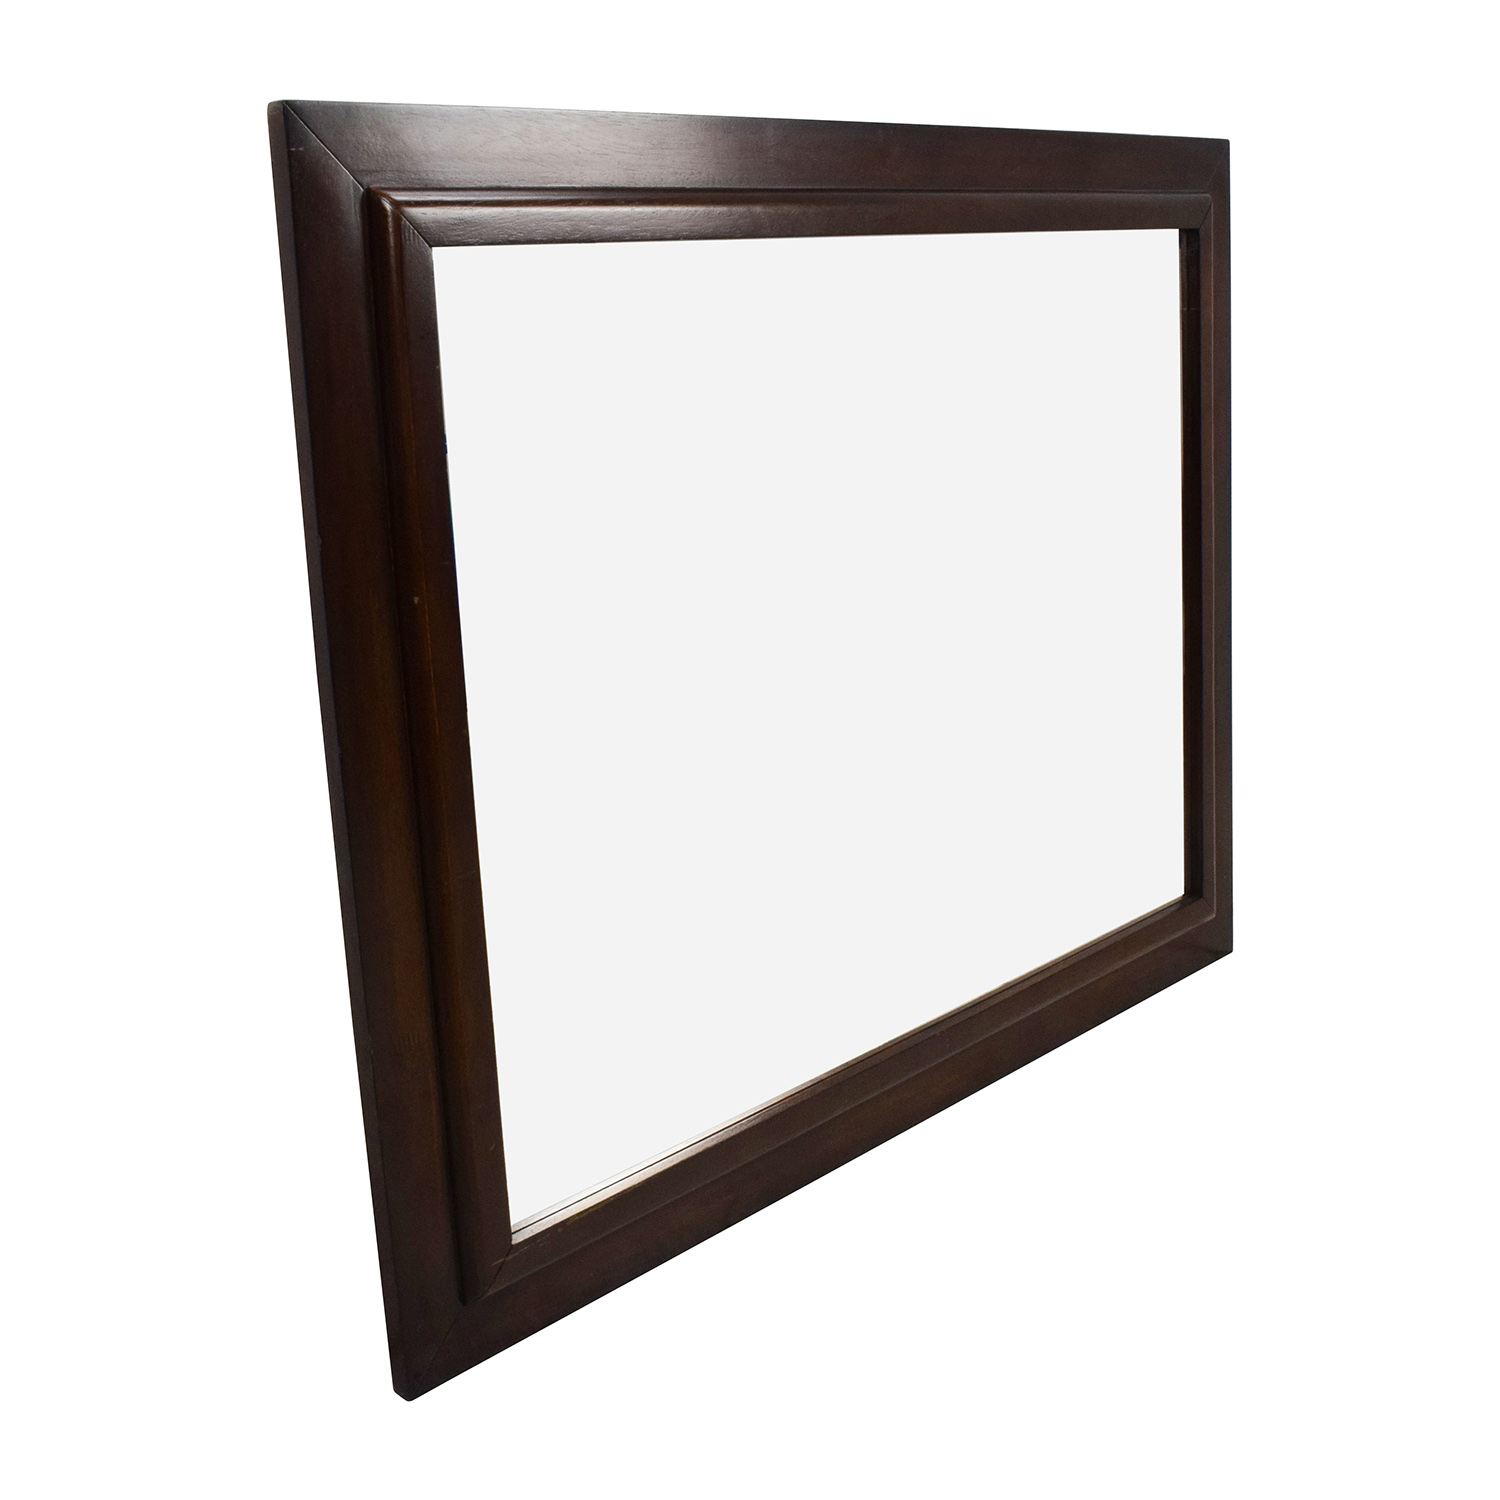 80 off large square wood framed wall mirror decor for Large framed mirrors